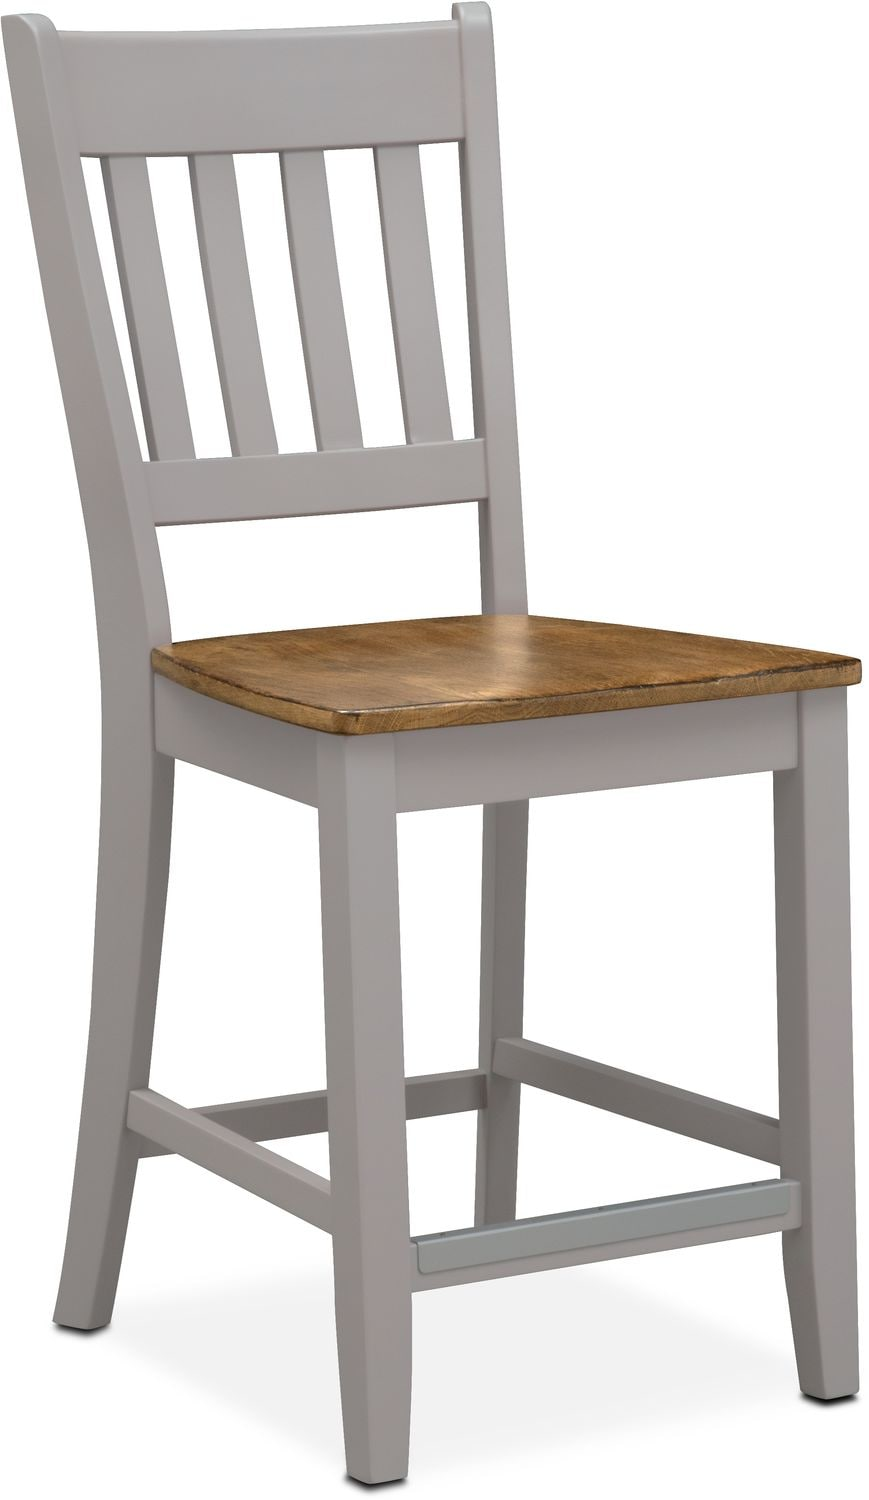 Dining Room Furniture - Nantucket Counter-Height Slat-Back Chair - Oak and Gray